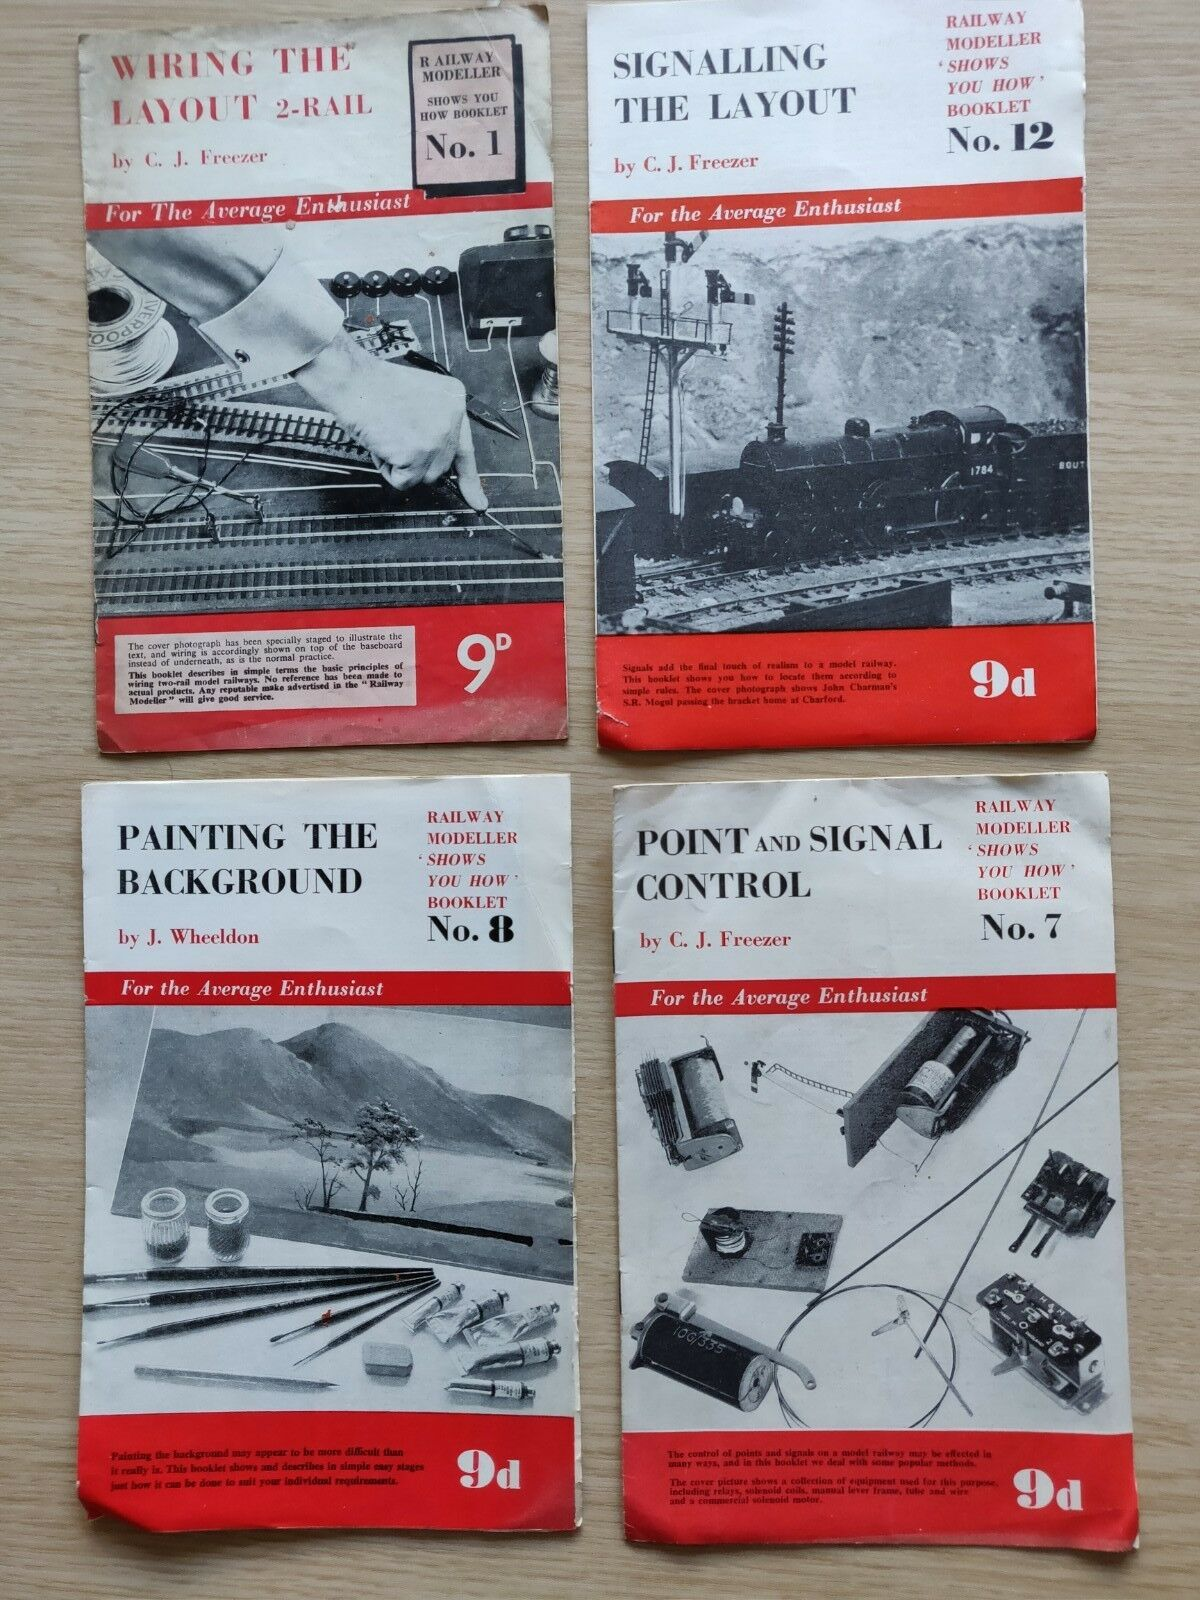 Railway Modeller Show You How Series Booklets, 1,7,8,12